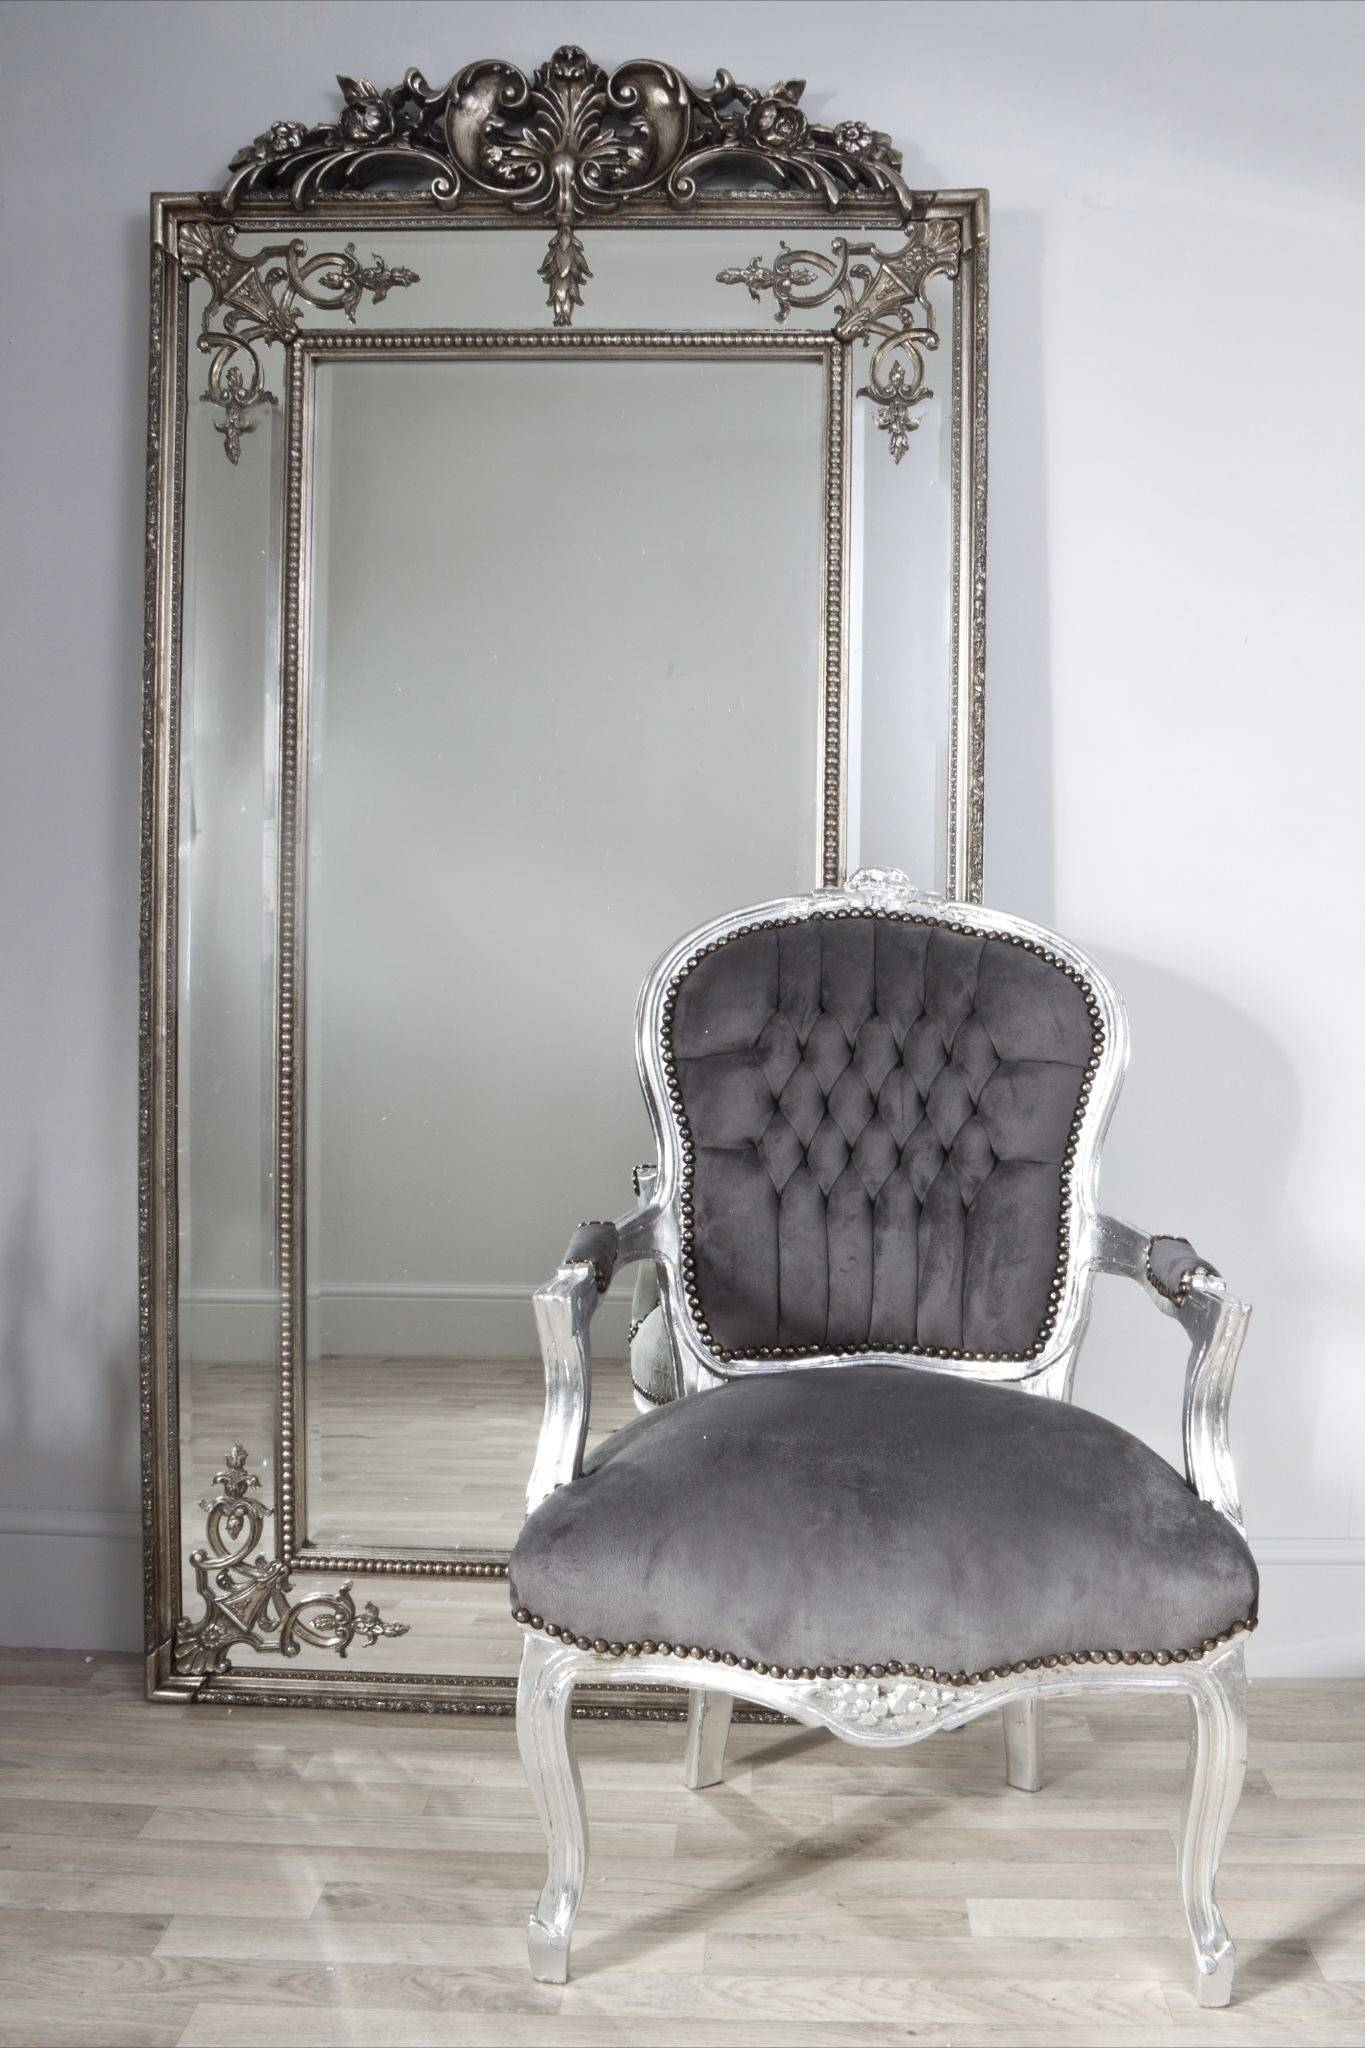 New Large Vintage Style Bathroom Mirrors 86 With Additional With with regard to Large Vintage Mirrors (Image 19 of 25)